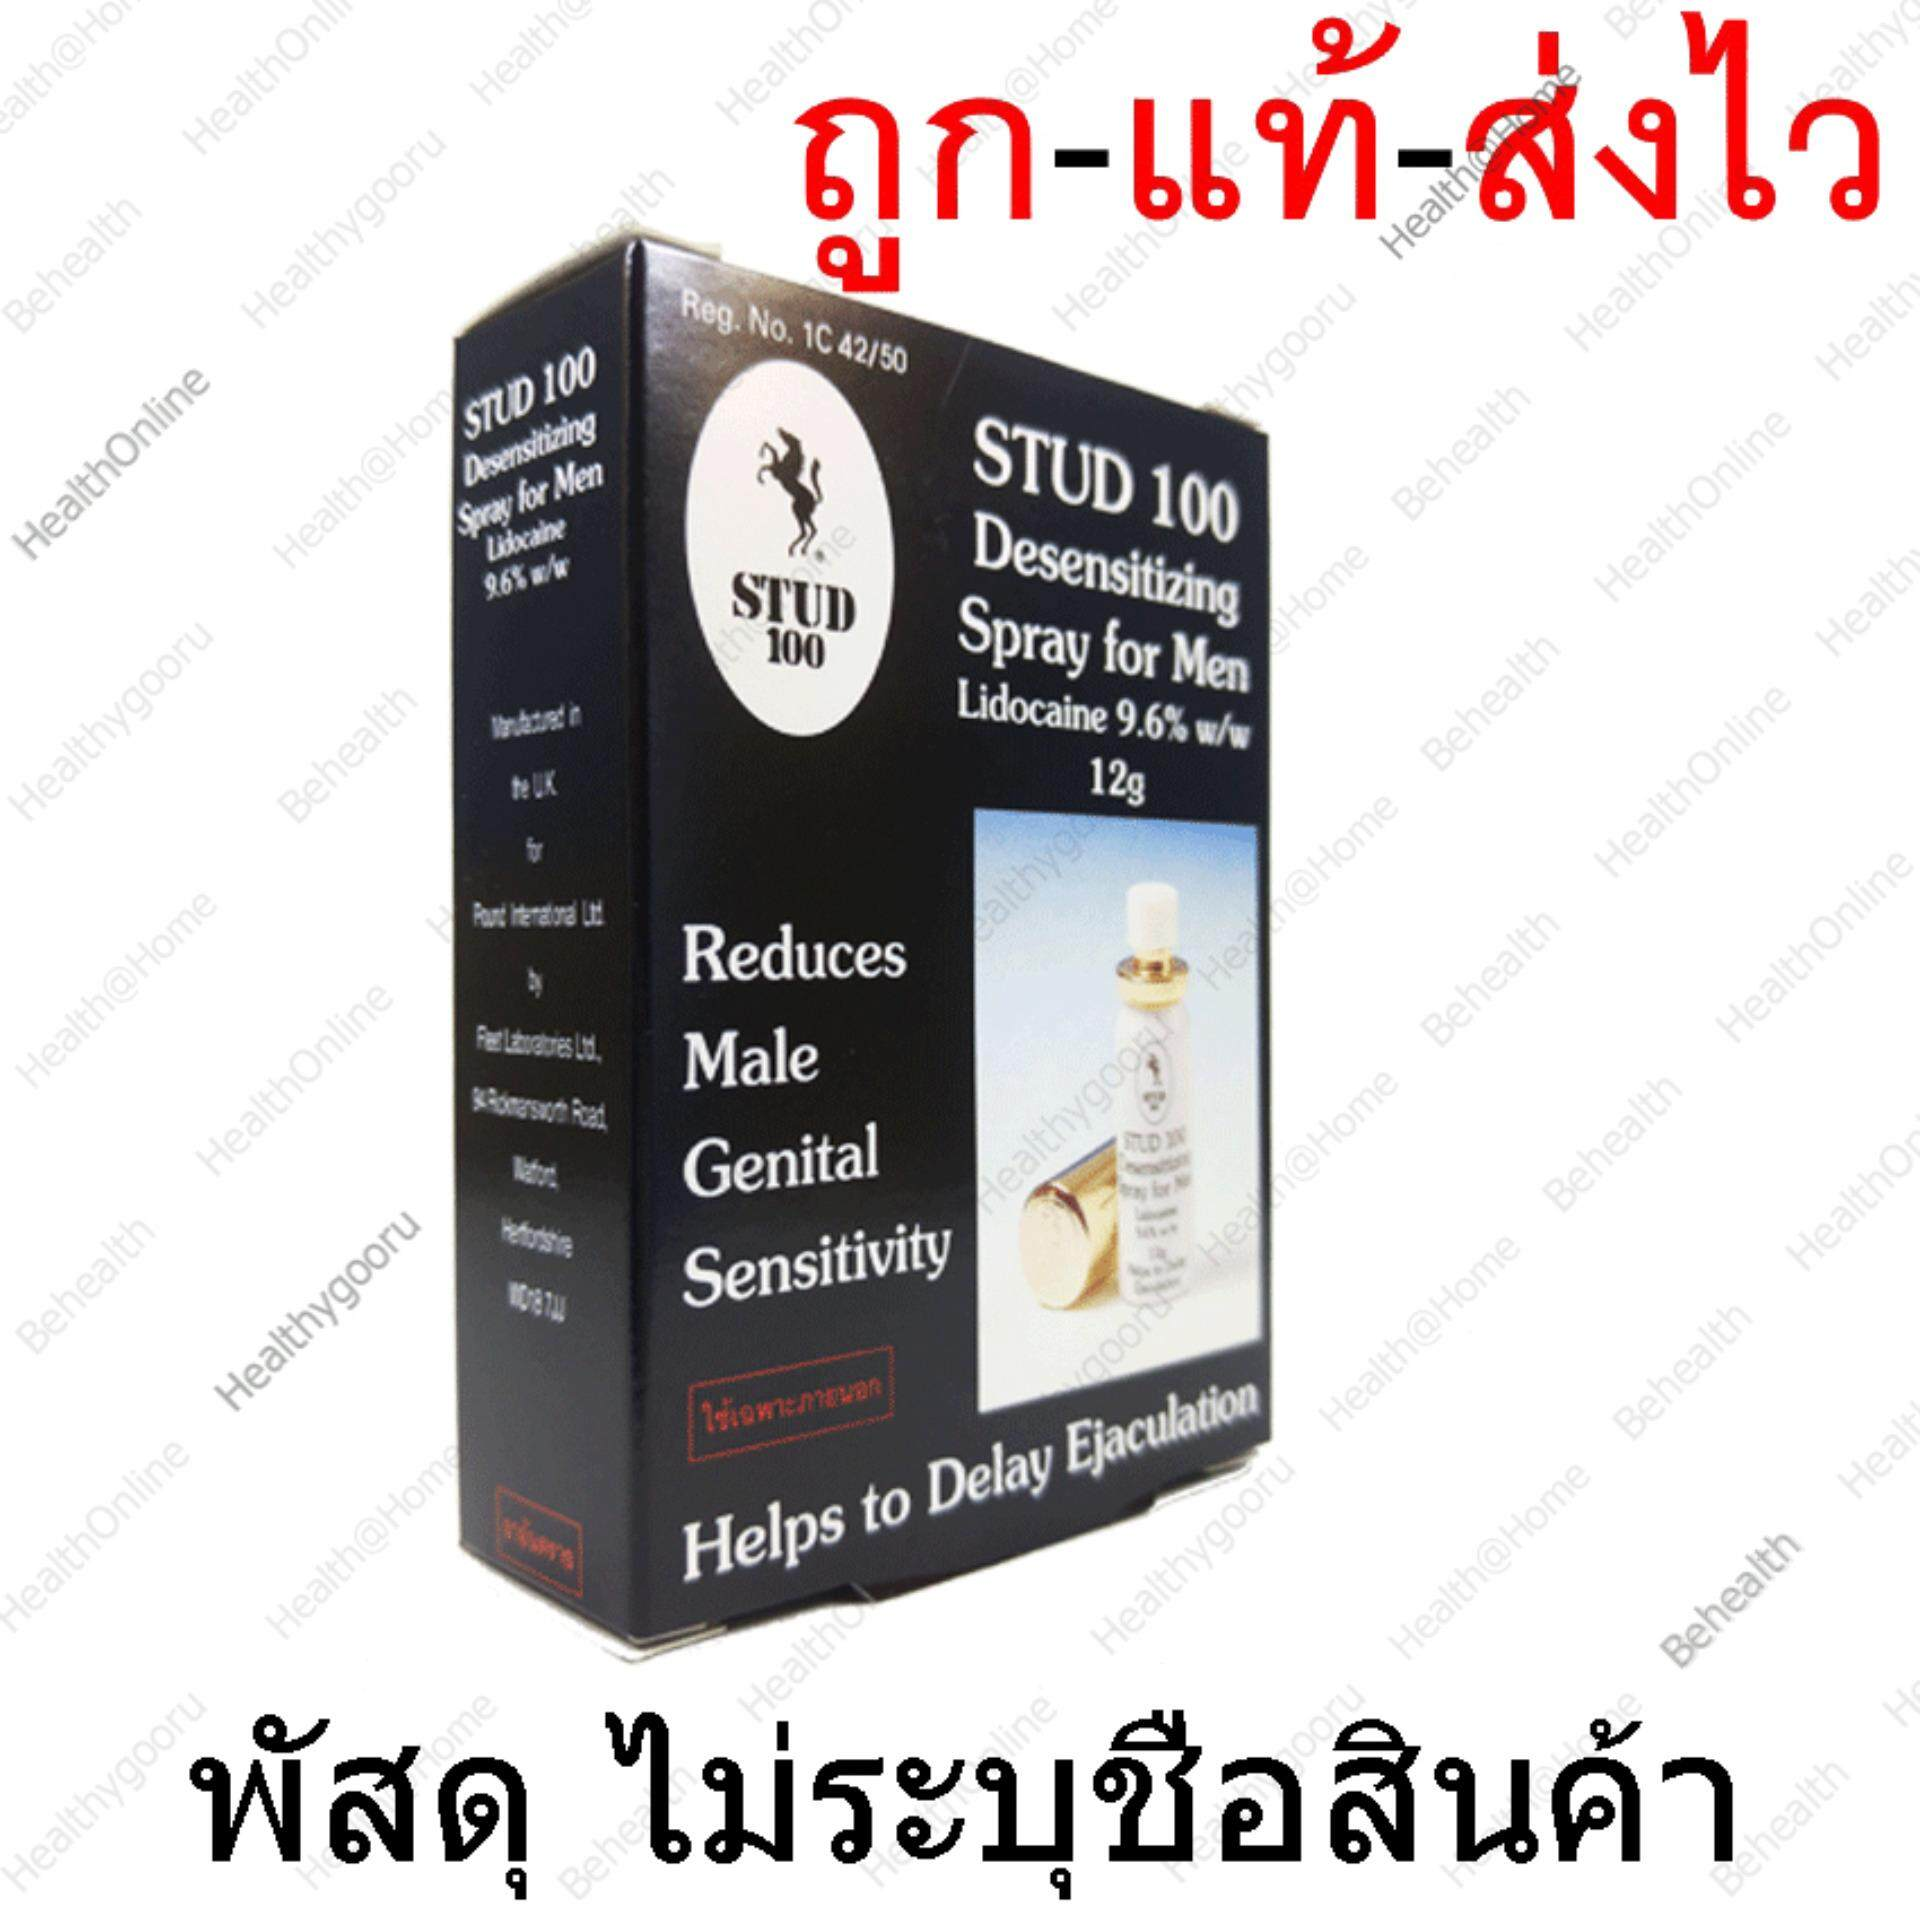 Stud 100 Local Anesthetics Men Spray สเปรย์ชะลอการหลั่ง 12 G. X 1 Box By Health@home.